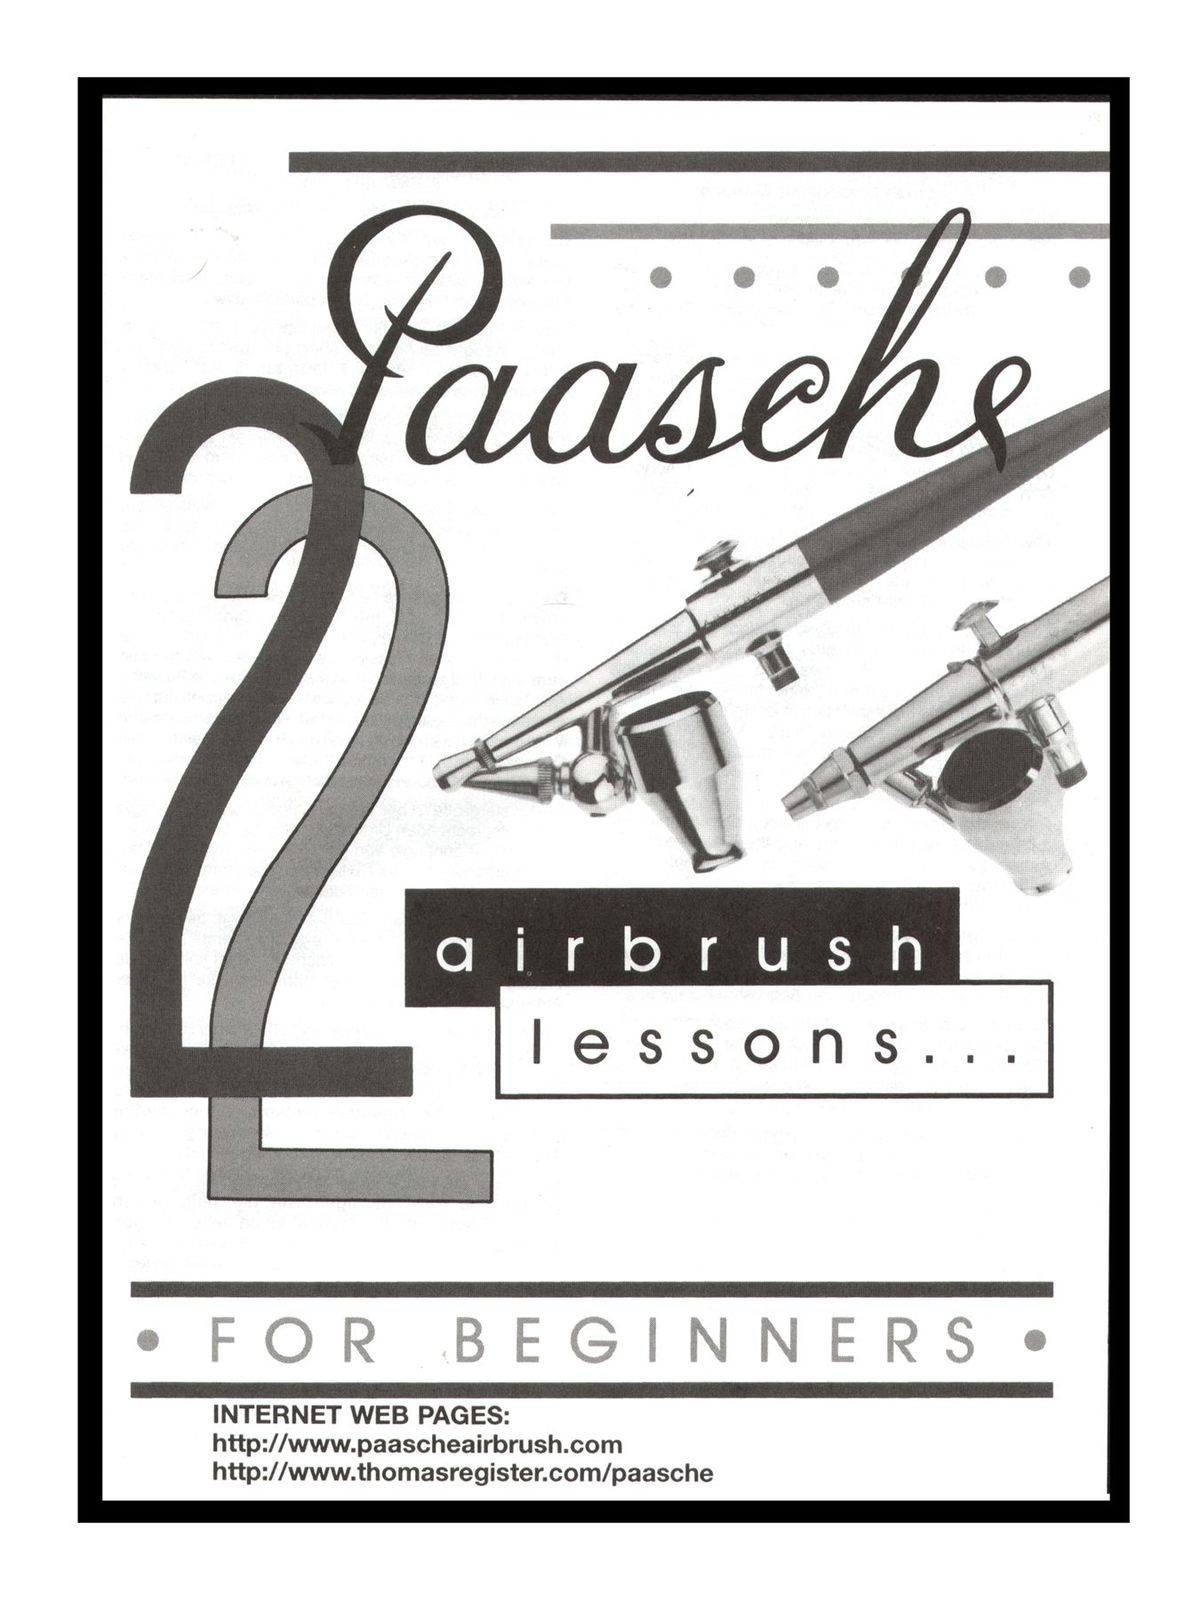 Paasche 22 Airbrush Lessons For Beginners